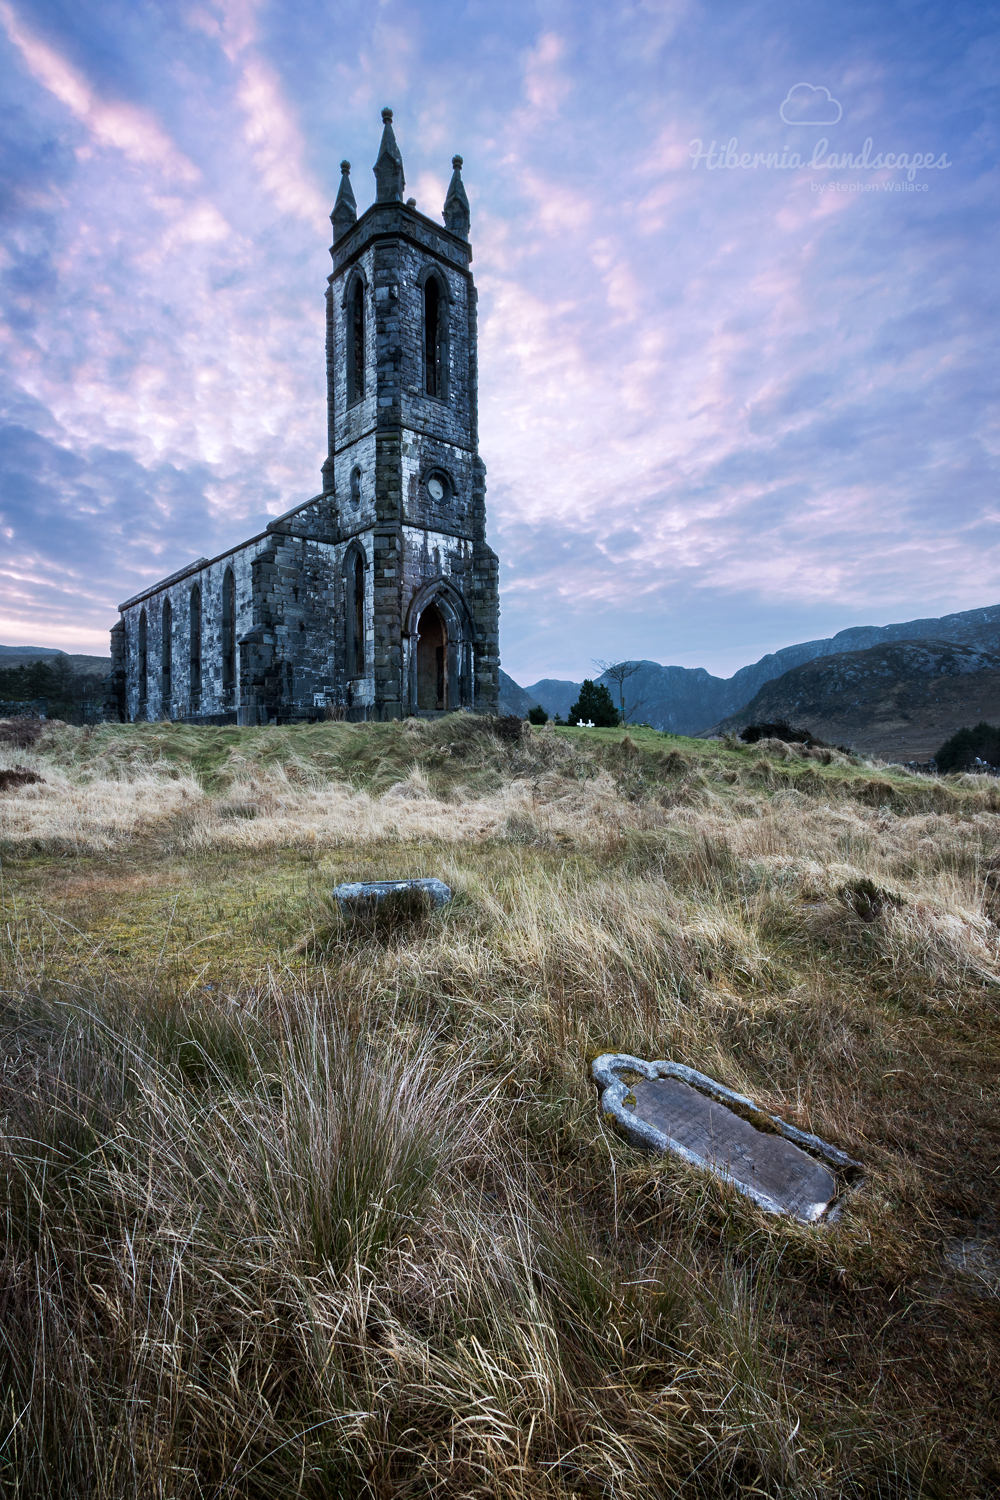 The Poisoned Glen